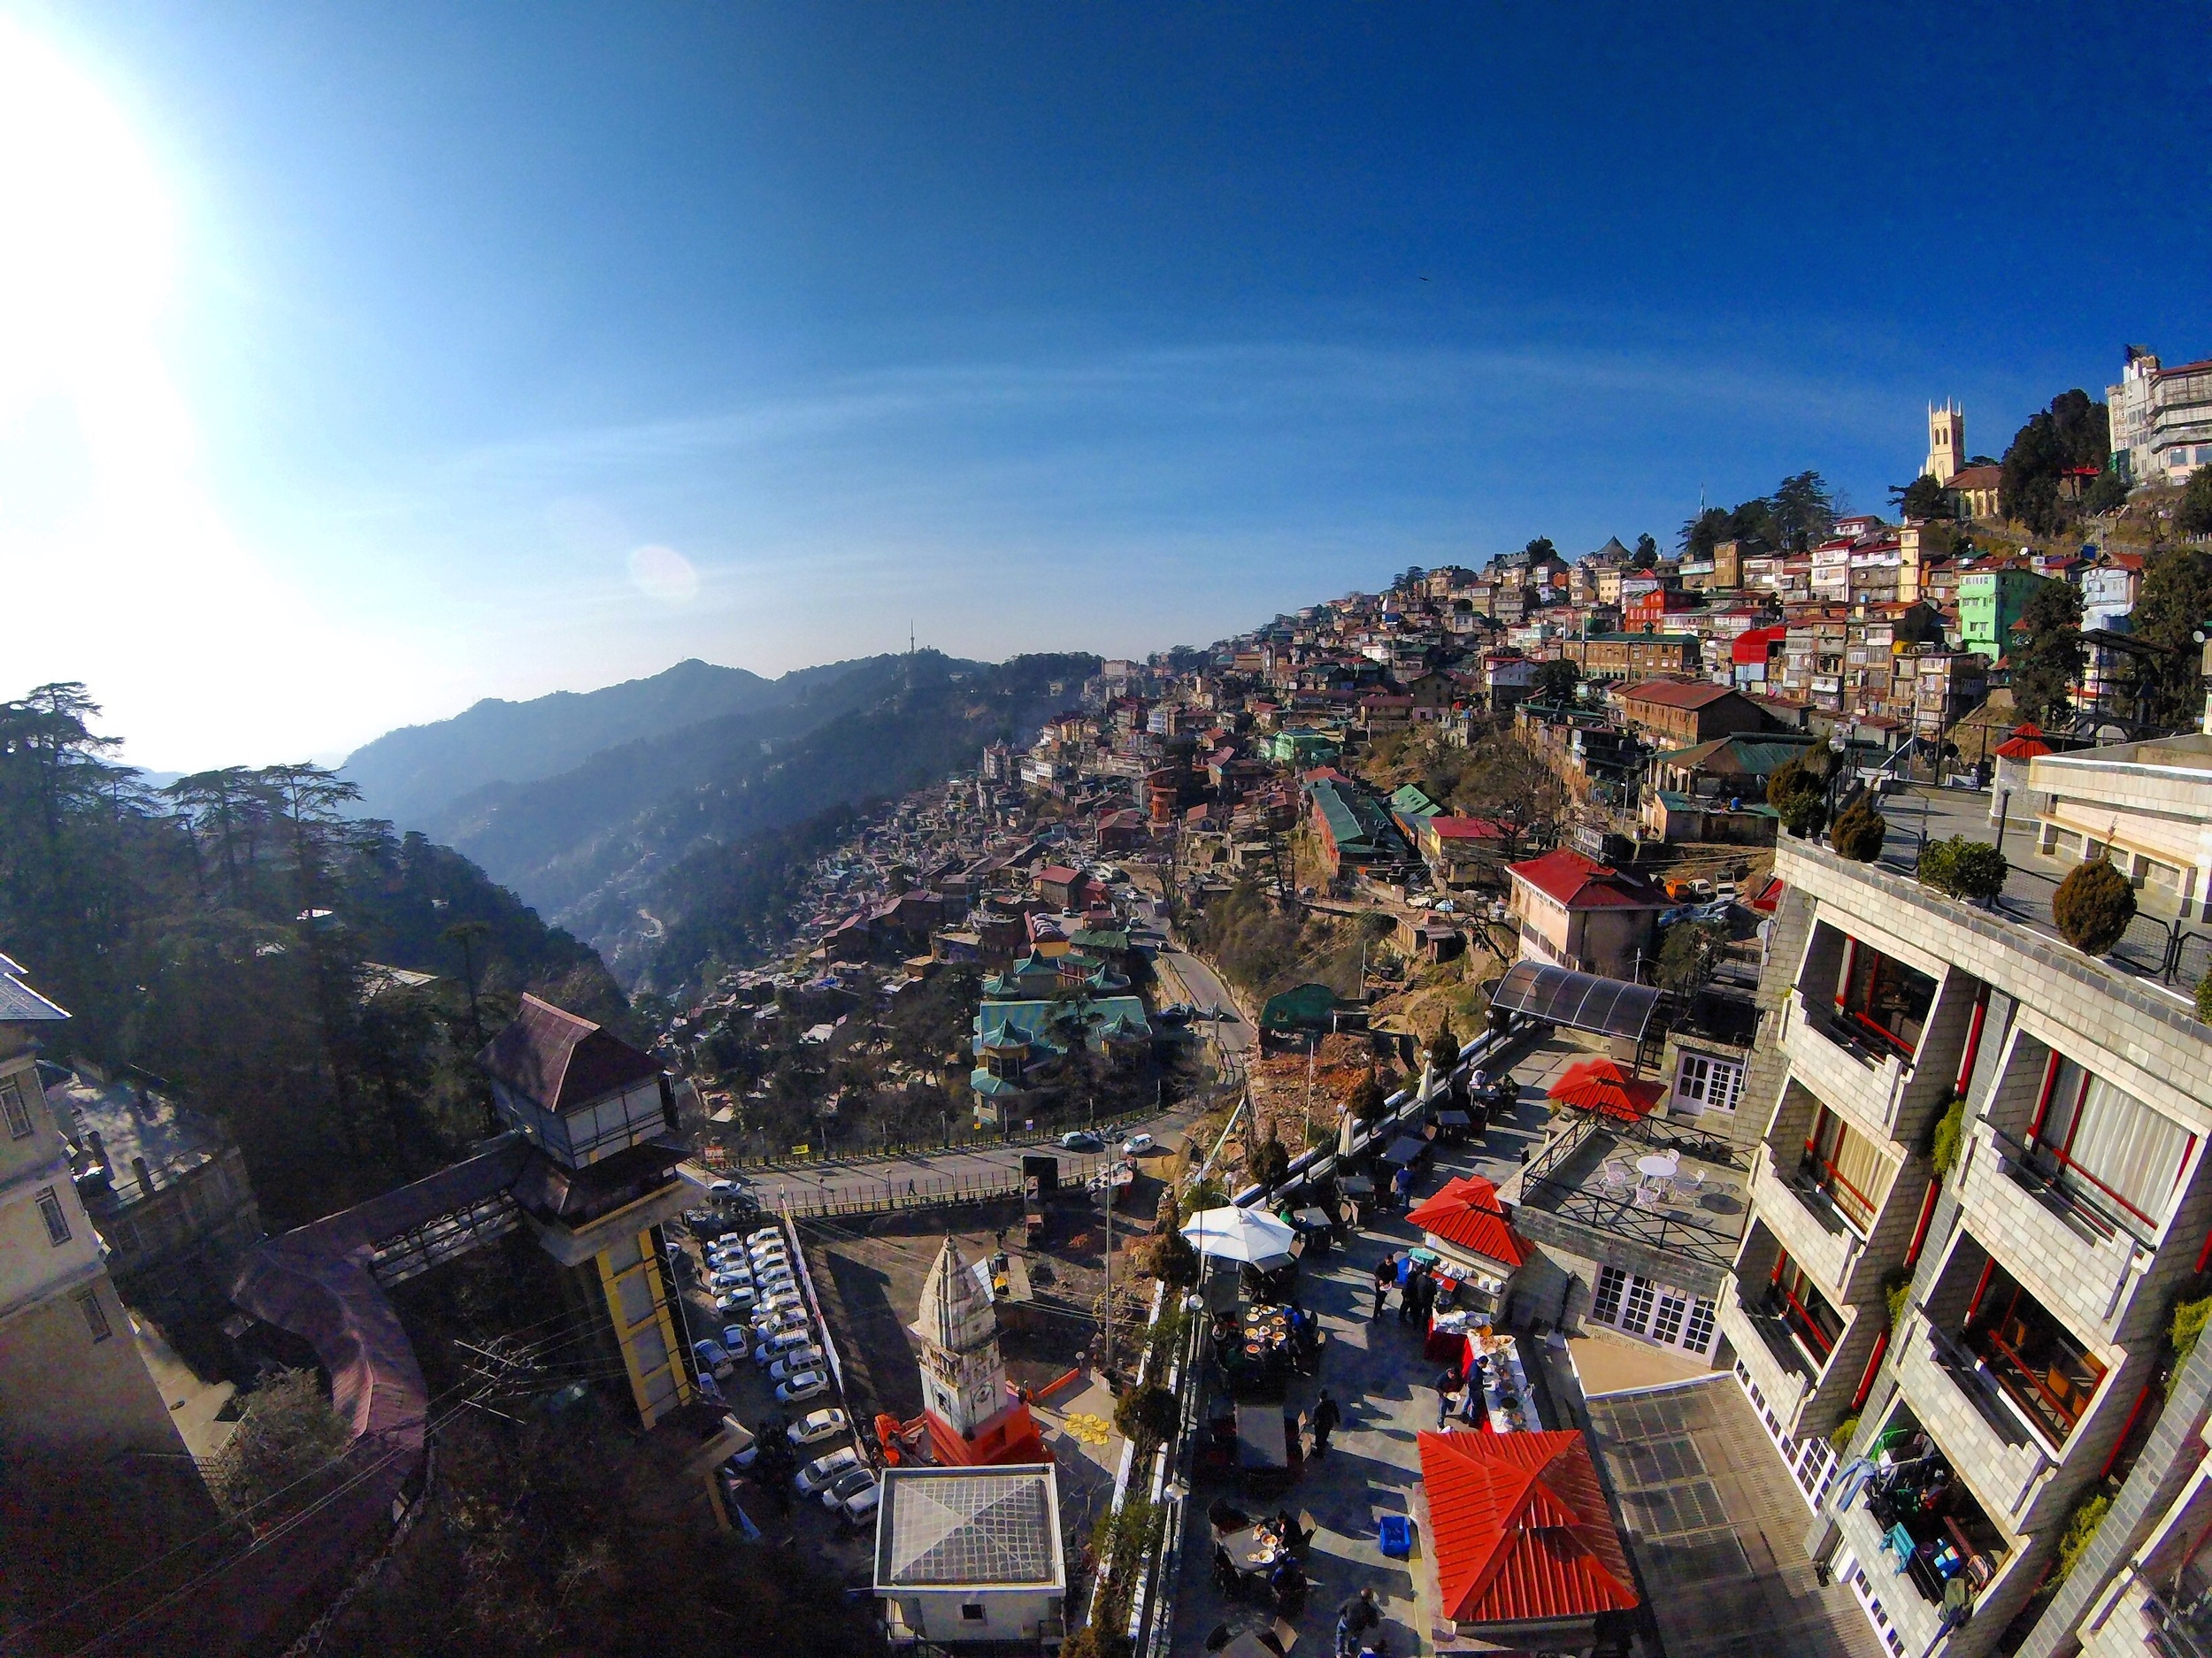 The view in Shimla.